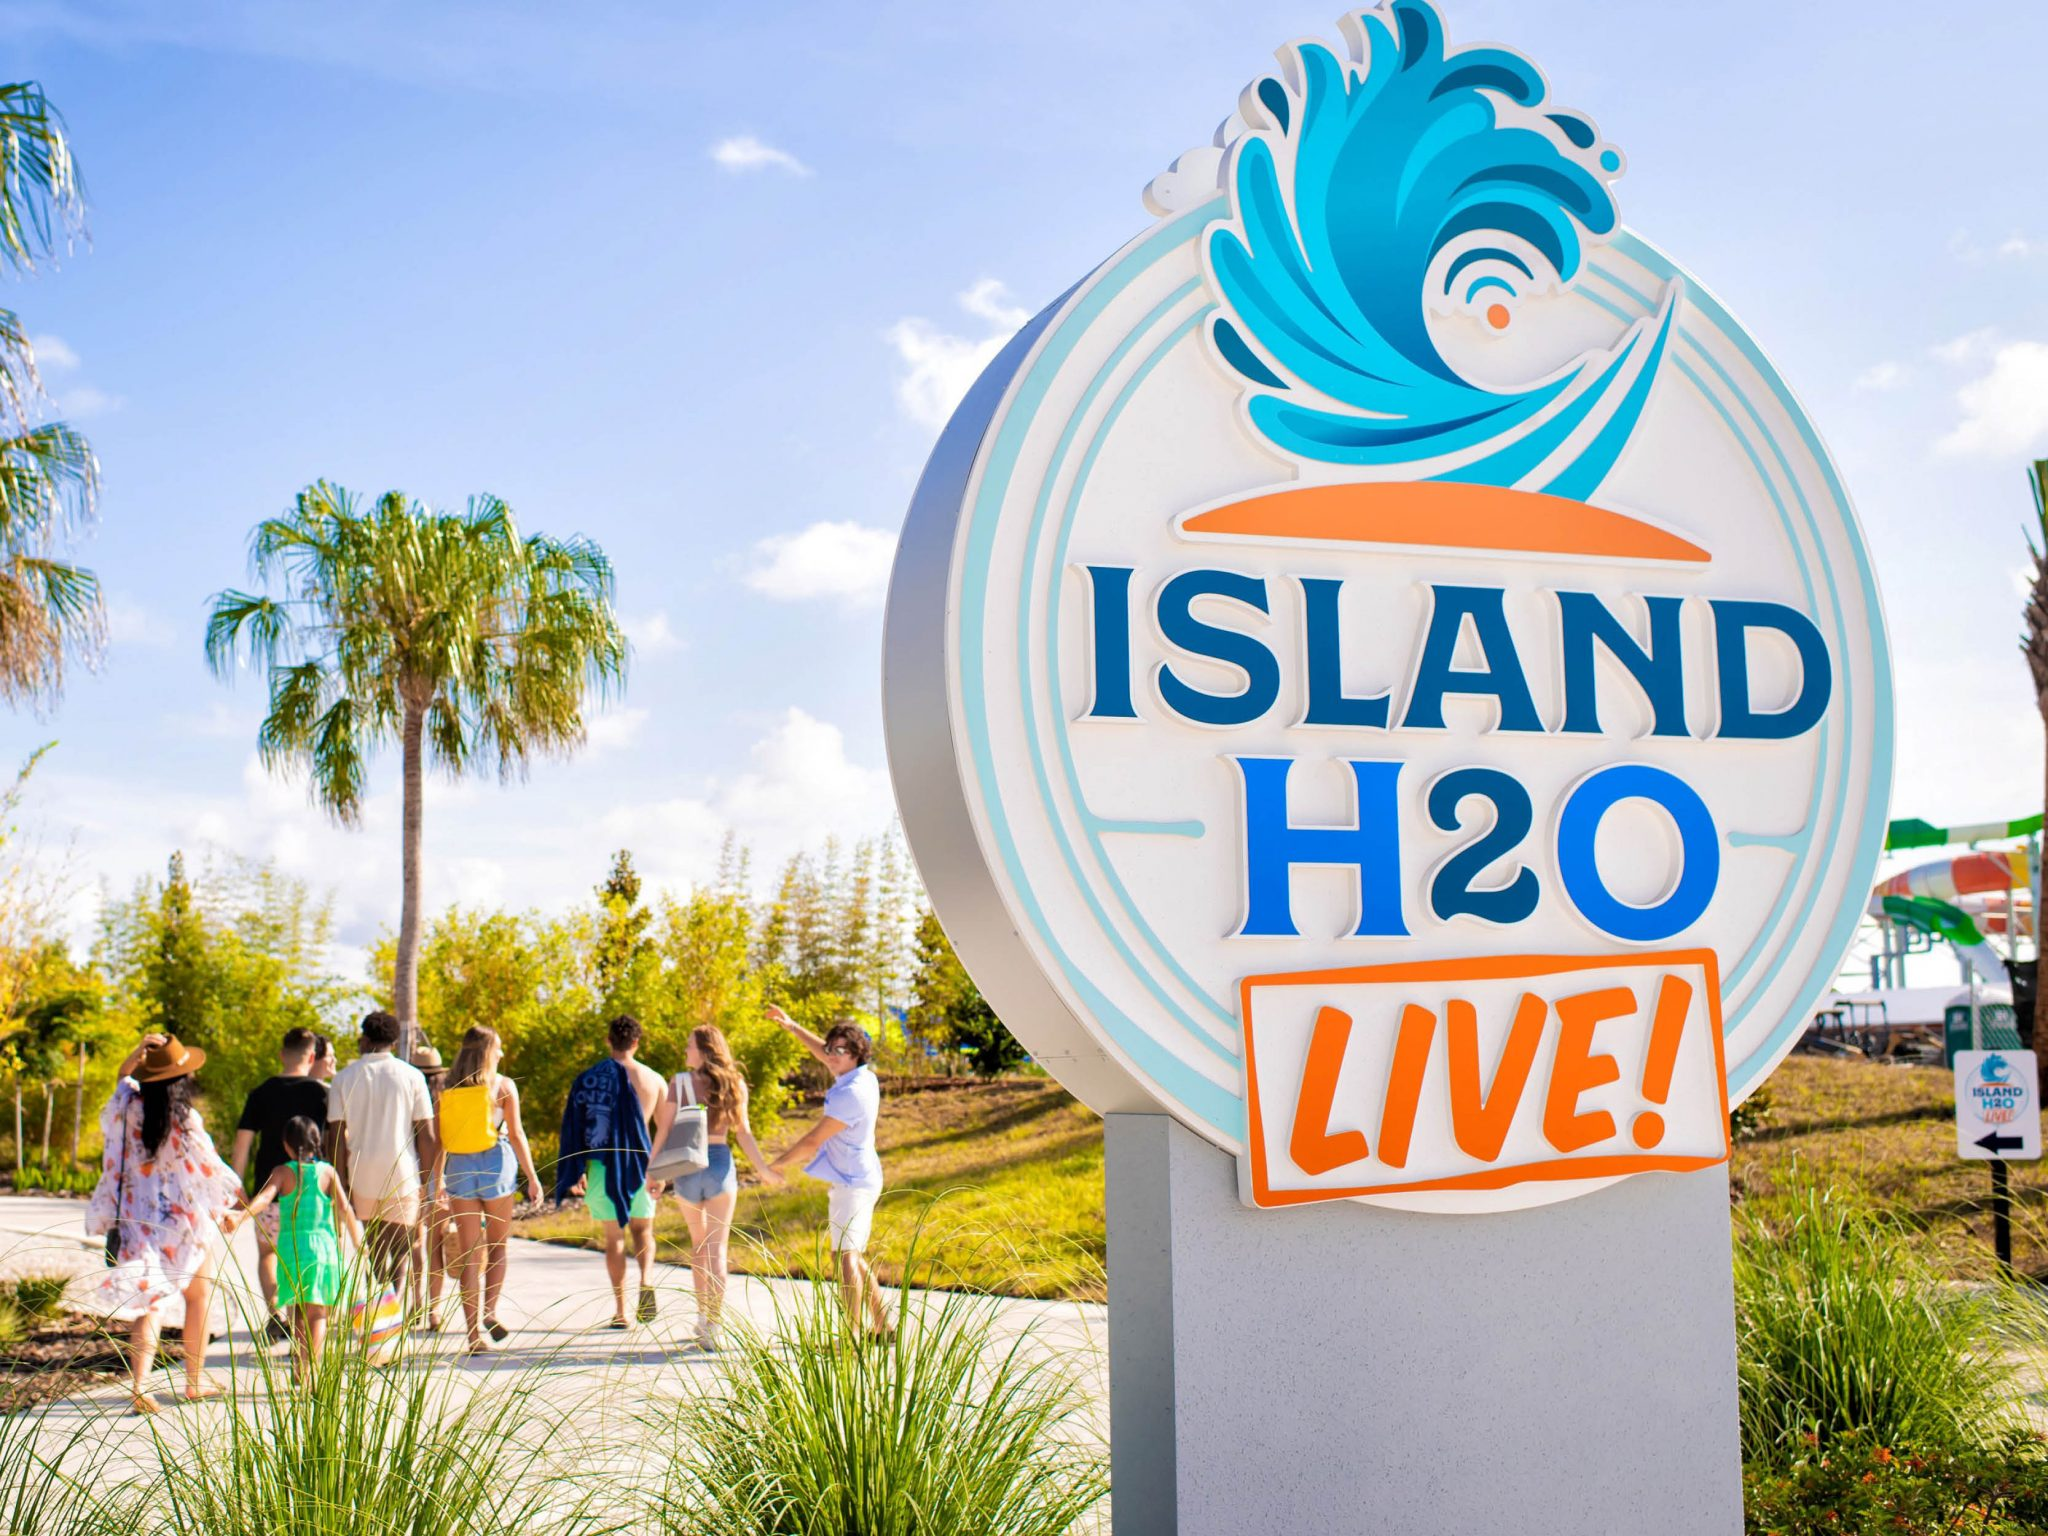 island h20 live sign